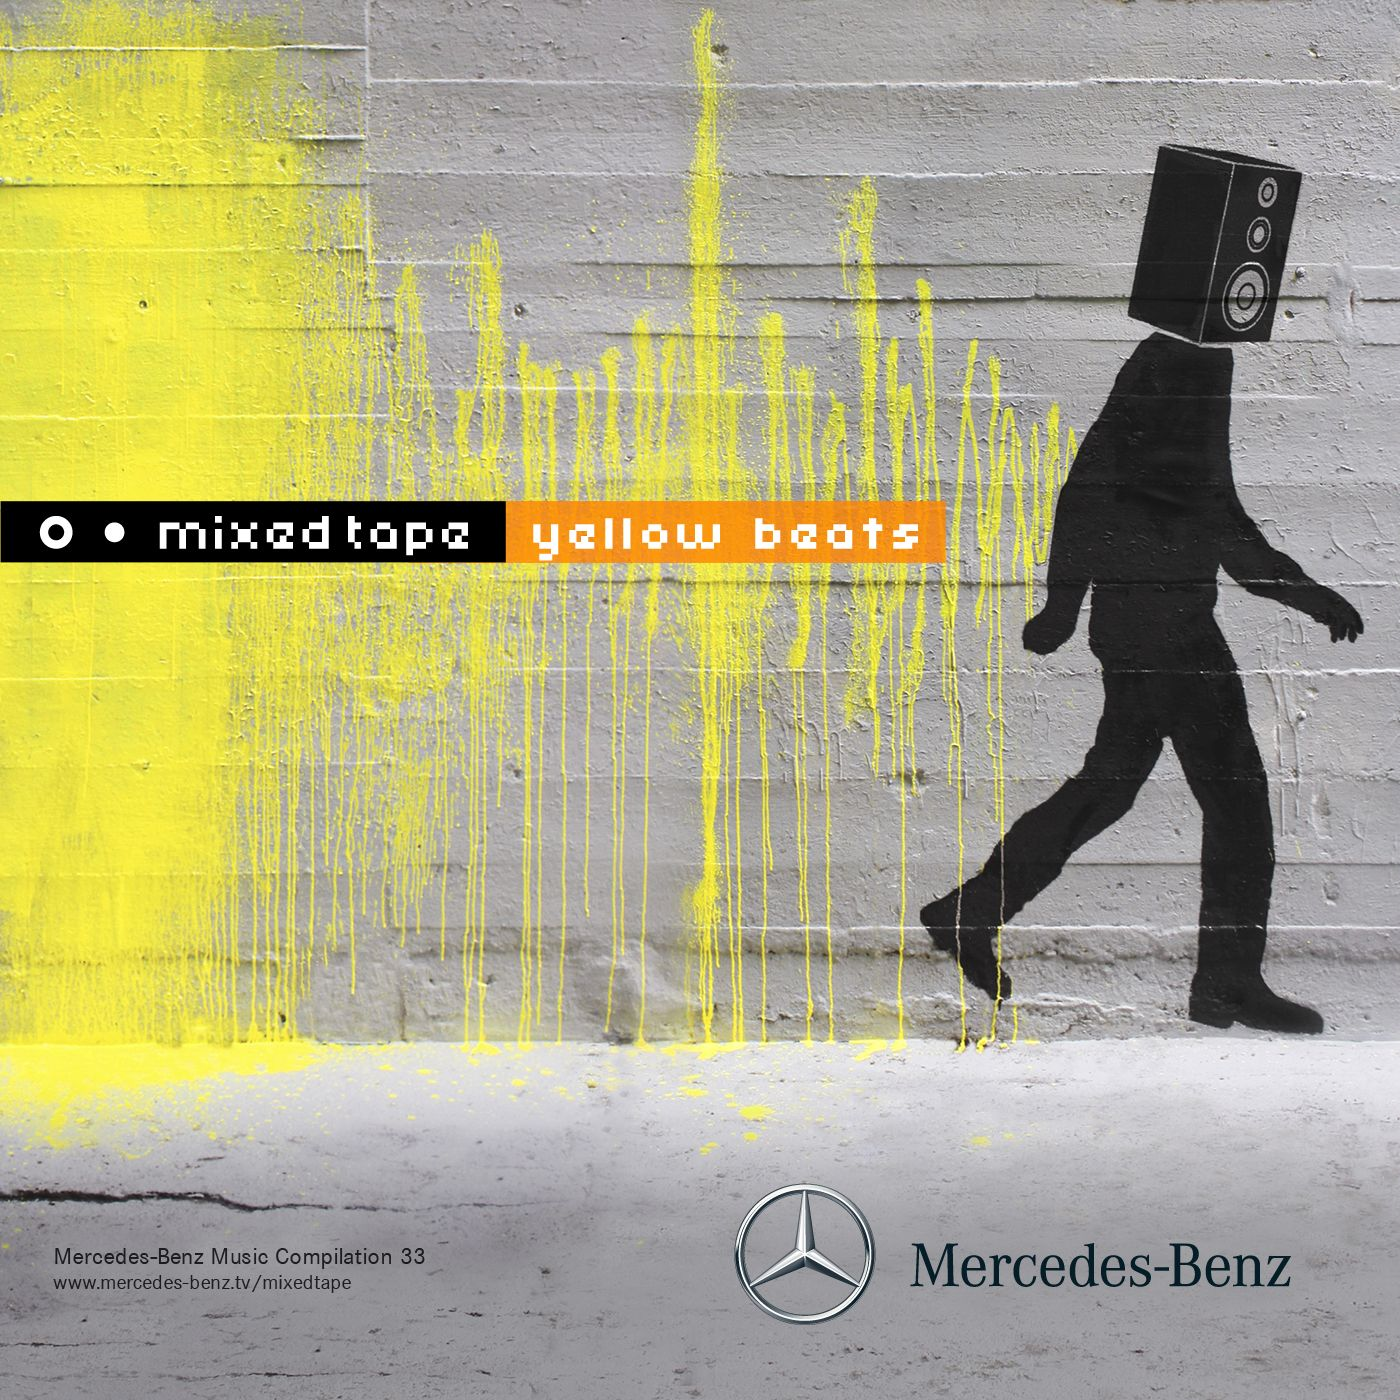 Mercedes Benz Mixed Tape #33 Yellow Beats Cover Art By Milk